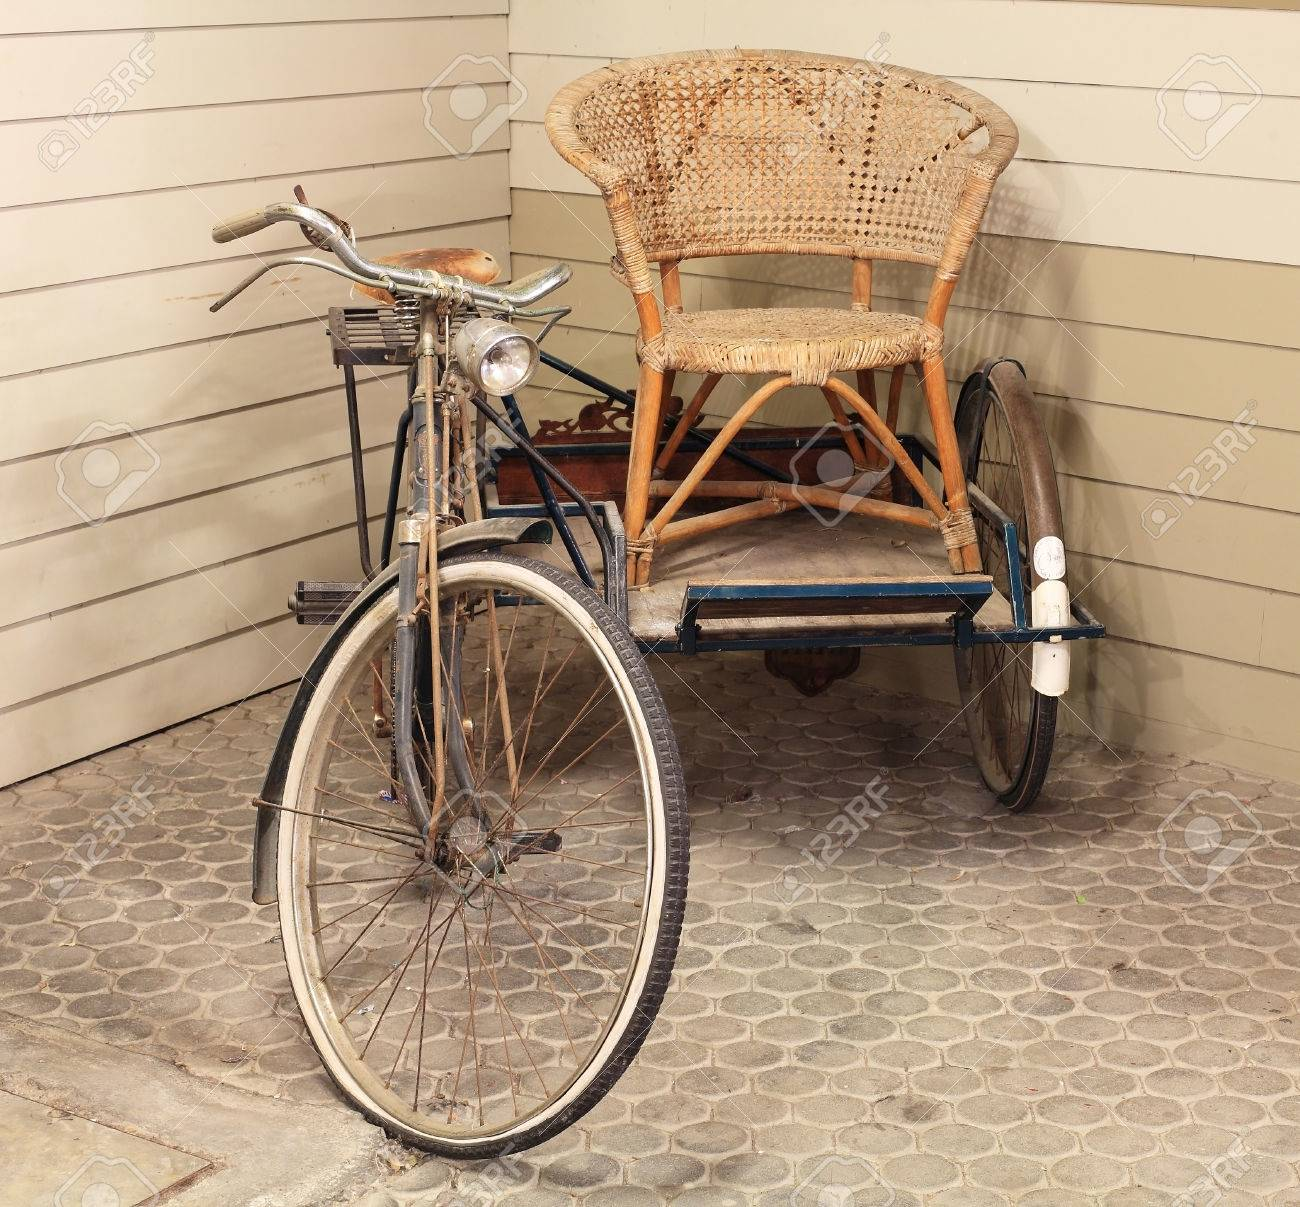 Vintage Rattan Chair Vintage Old Bicycle And Side Trailer With Rattan Chair